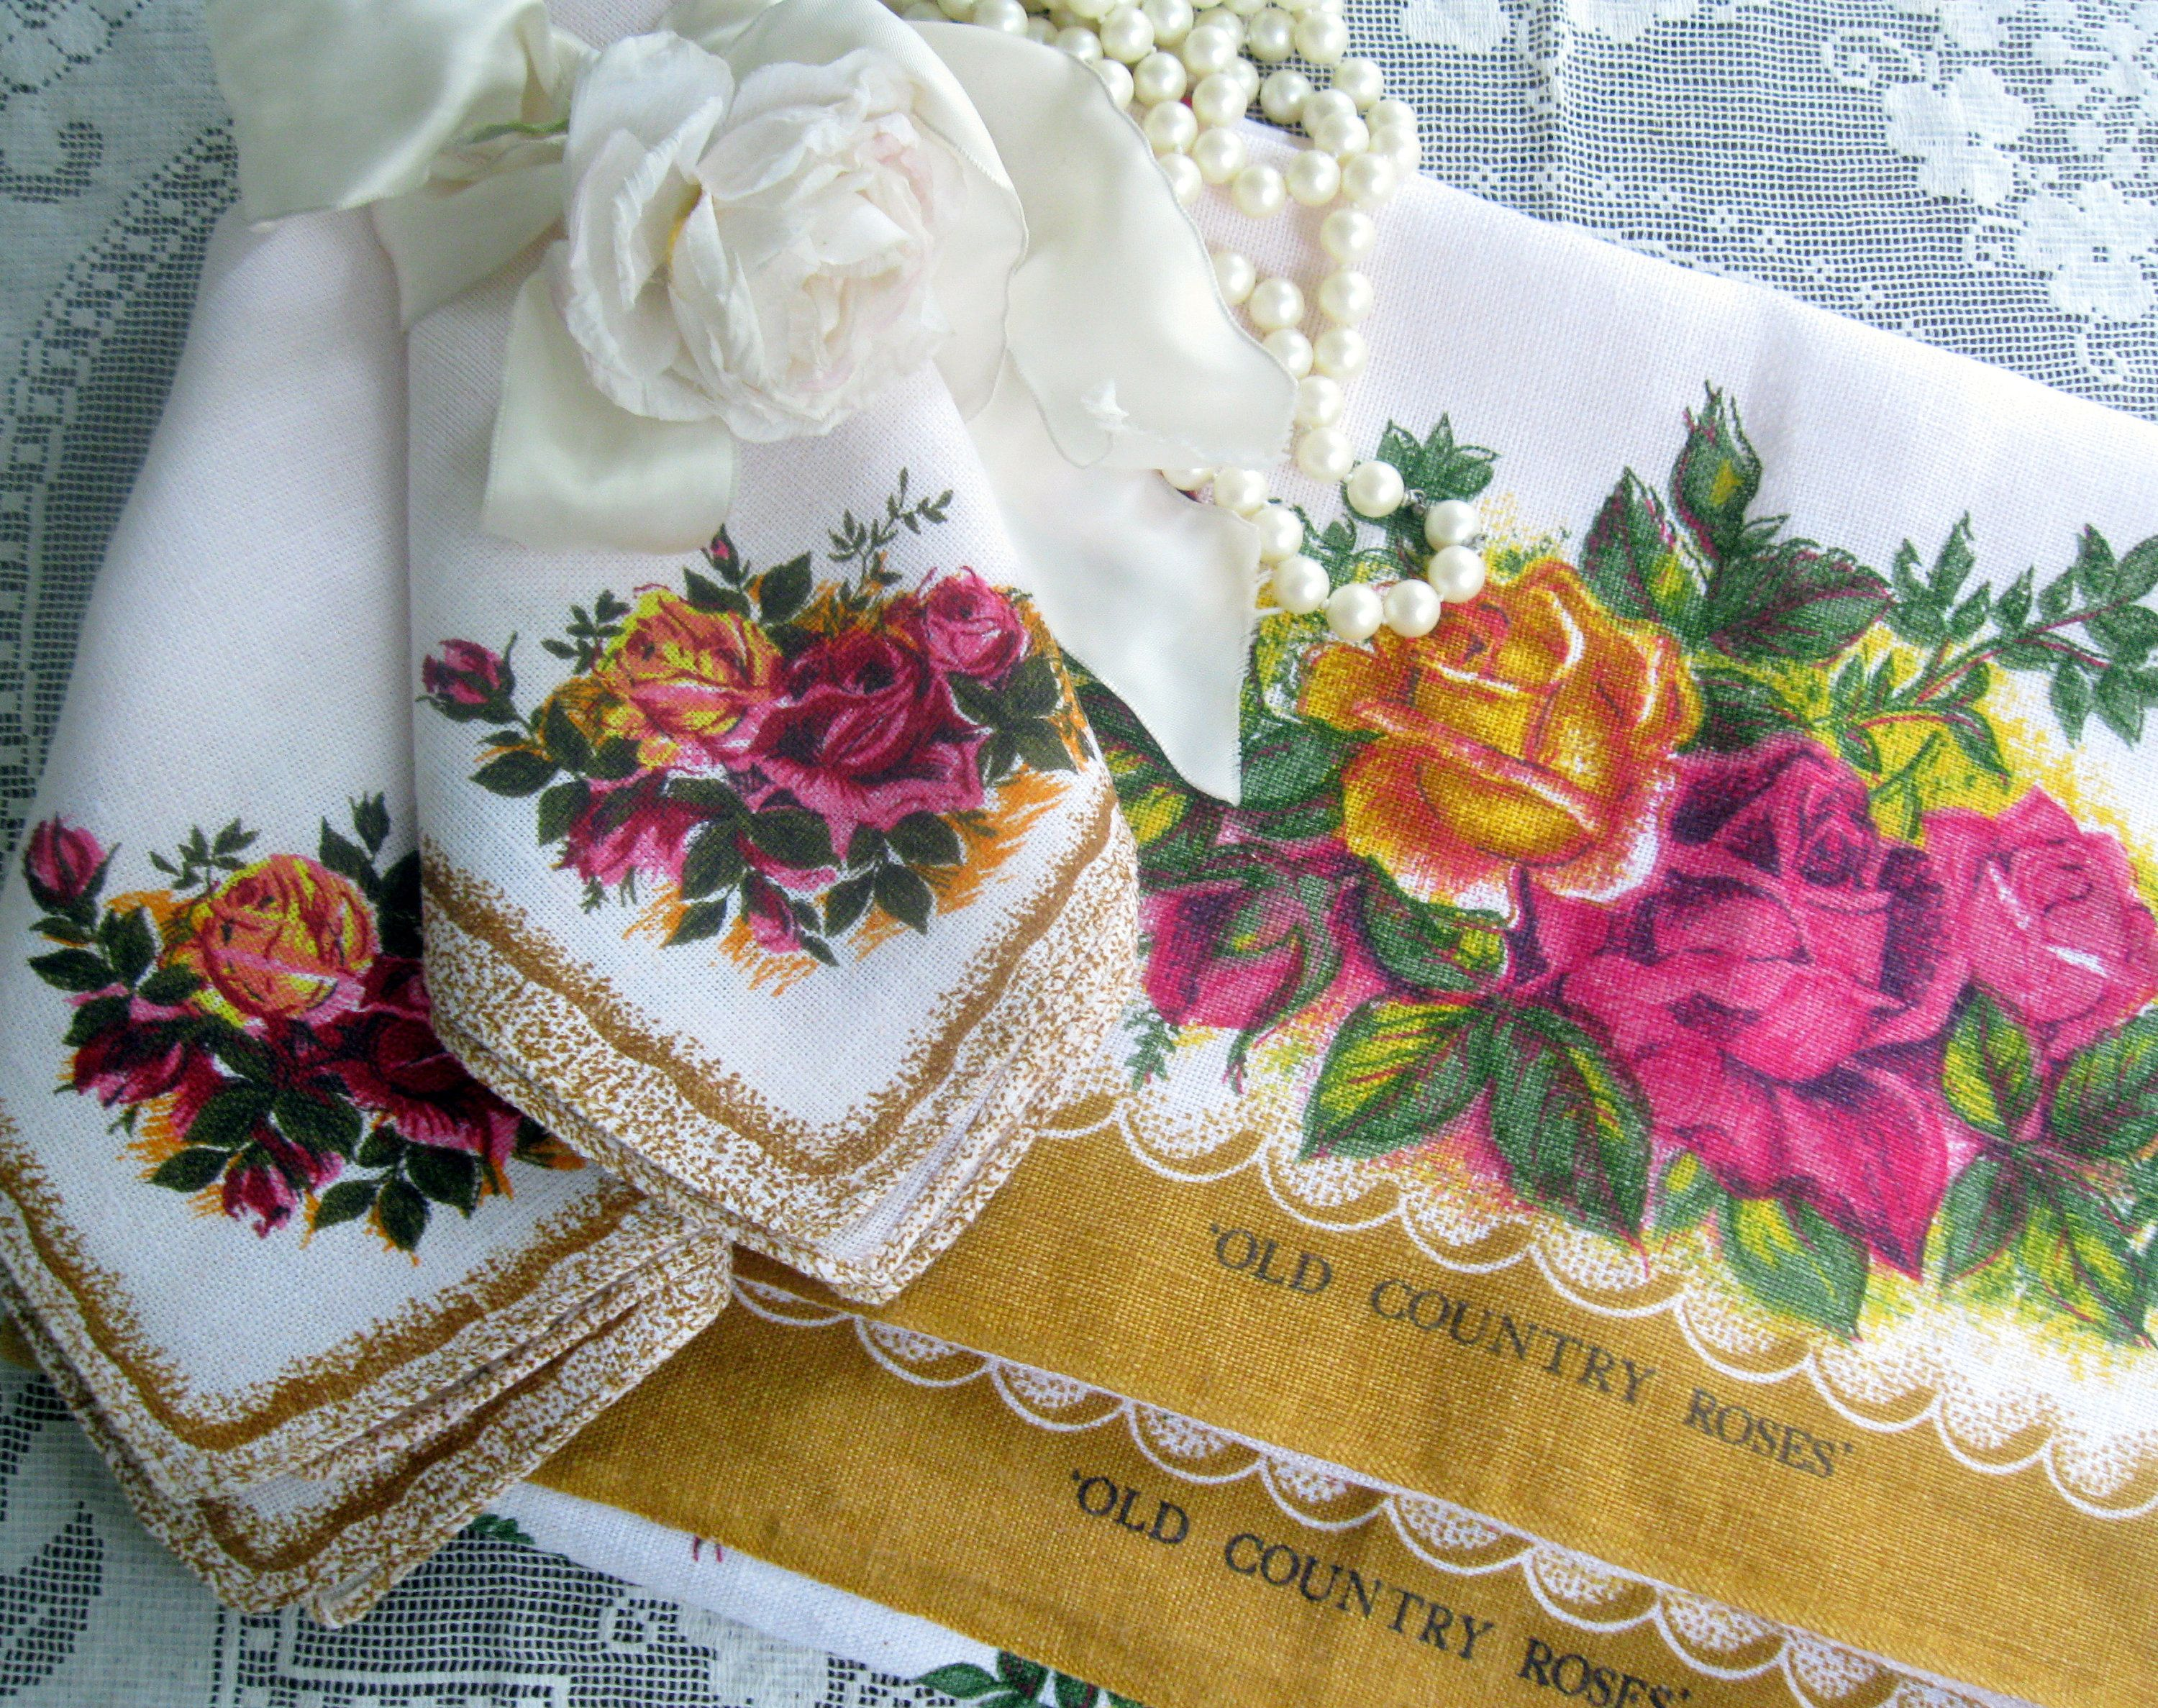 Royal Albert Old Country Roses Four Piece Linen Set Two Tea